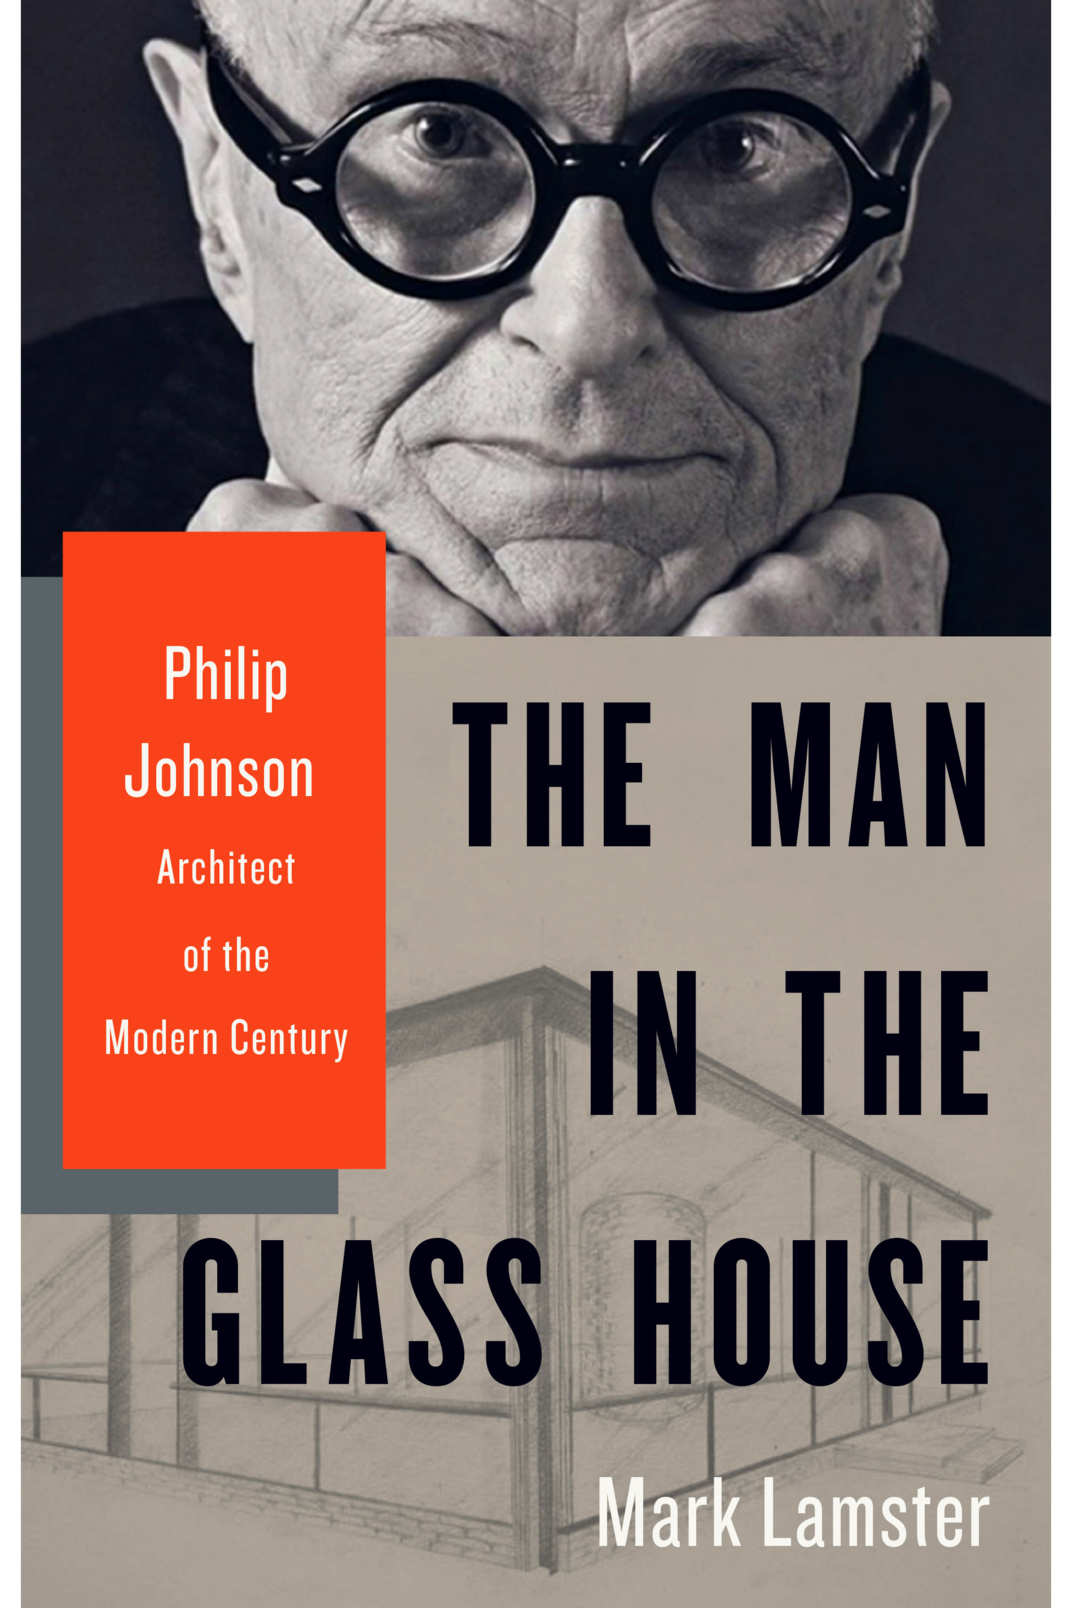 The Man in the Glass House: Philip Johnson, Architect of the Modern Century, by Mark Lamster (Little, Brown, November 6)